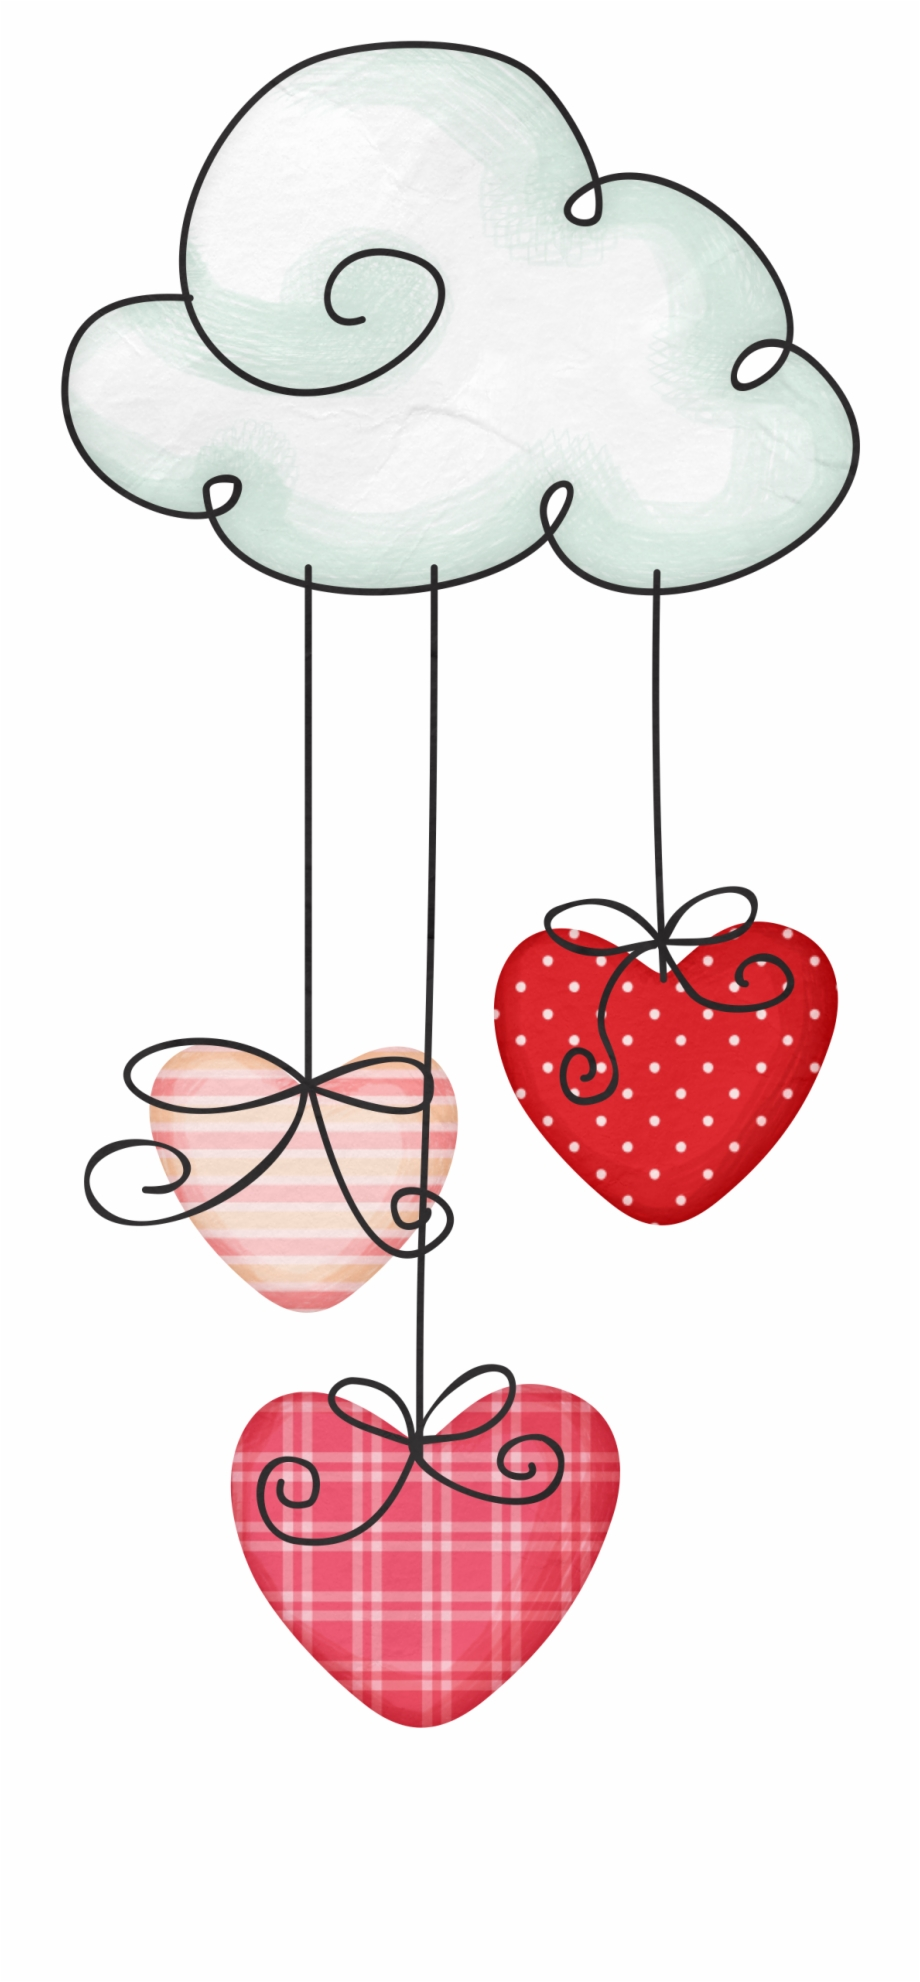 Hearts clipart cloud. Drawing heart free png